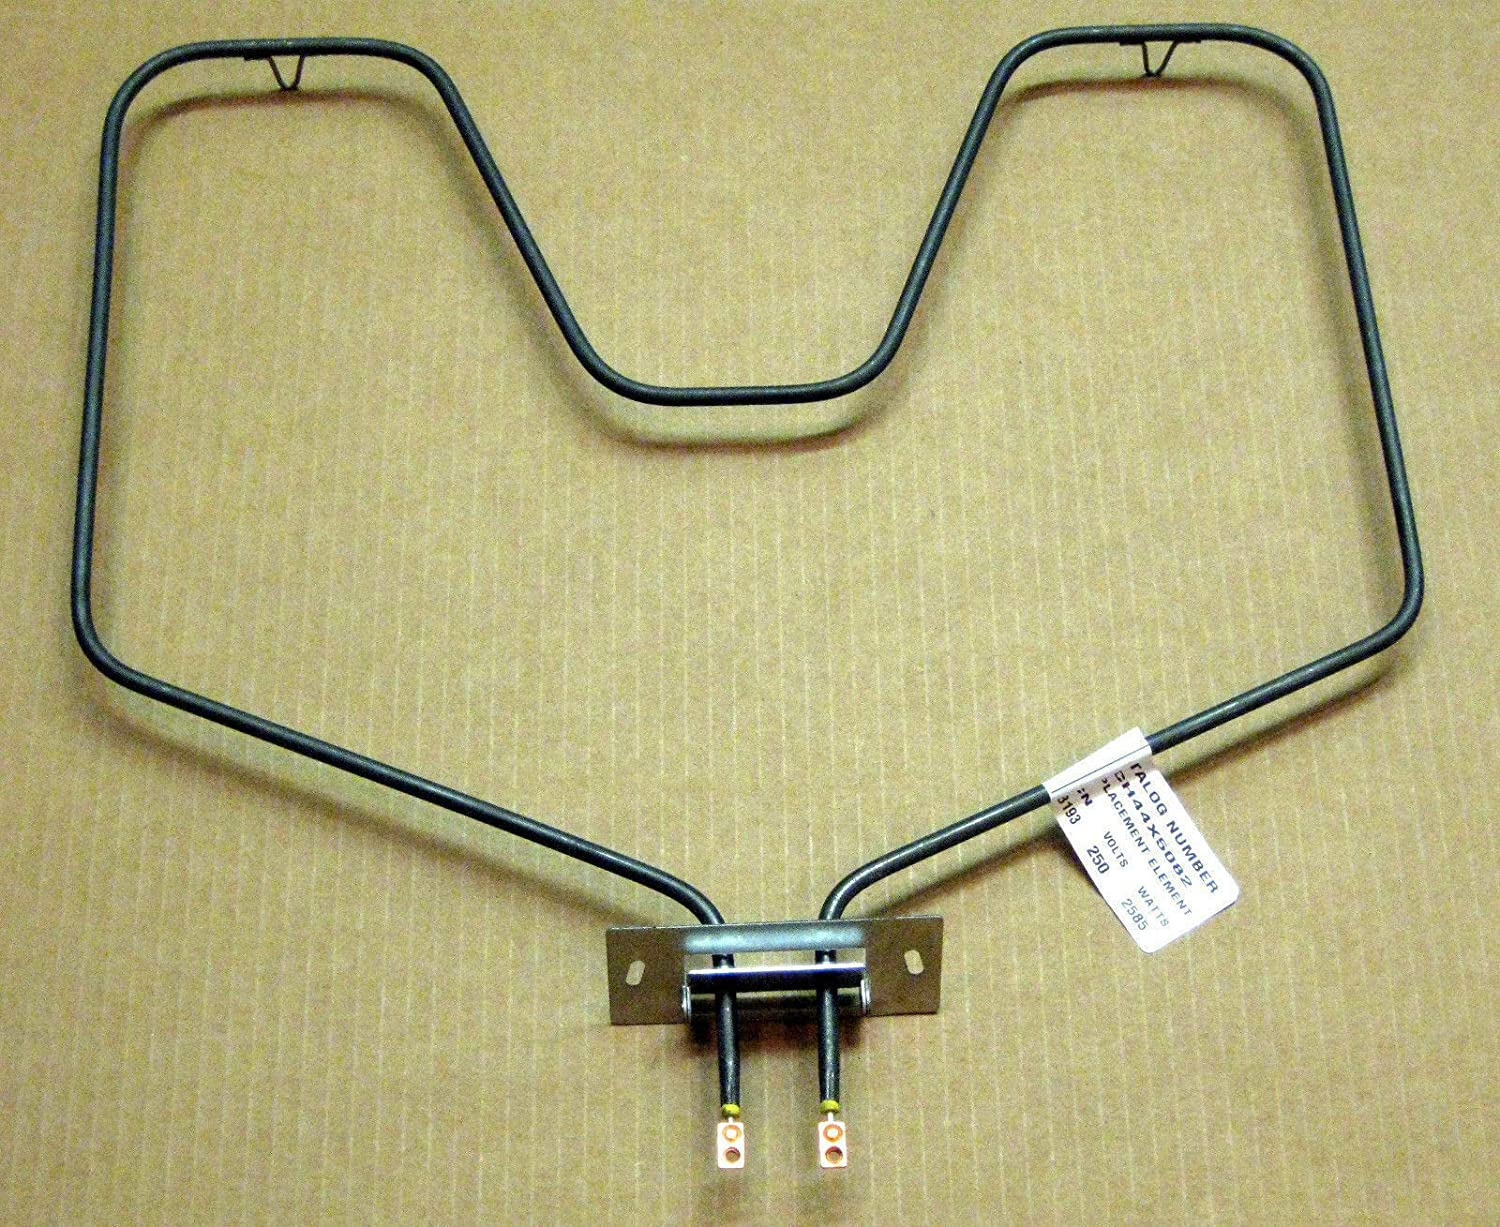 Bottom heating element for self-cleaning oven GE Hotpoint WB44X5082